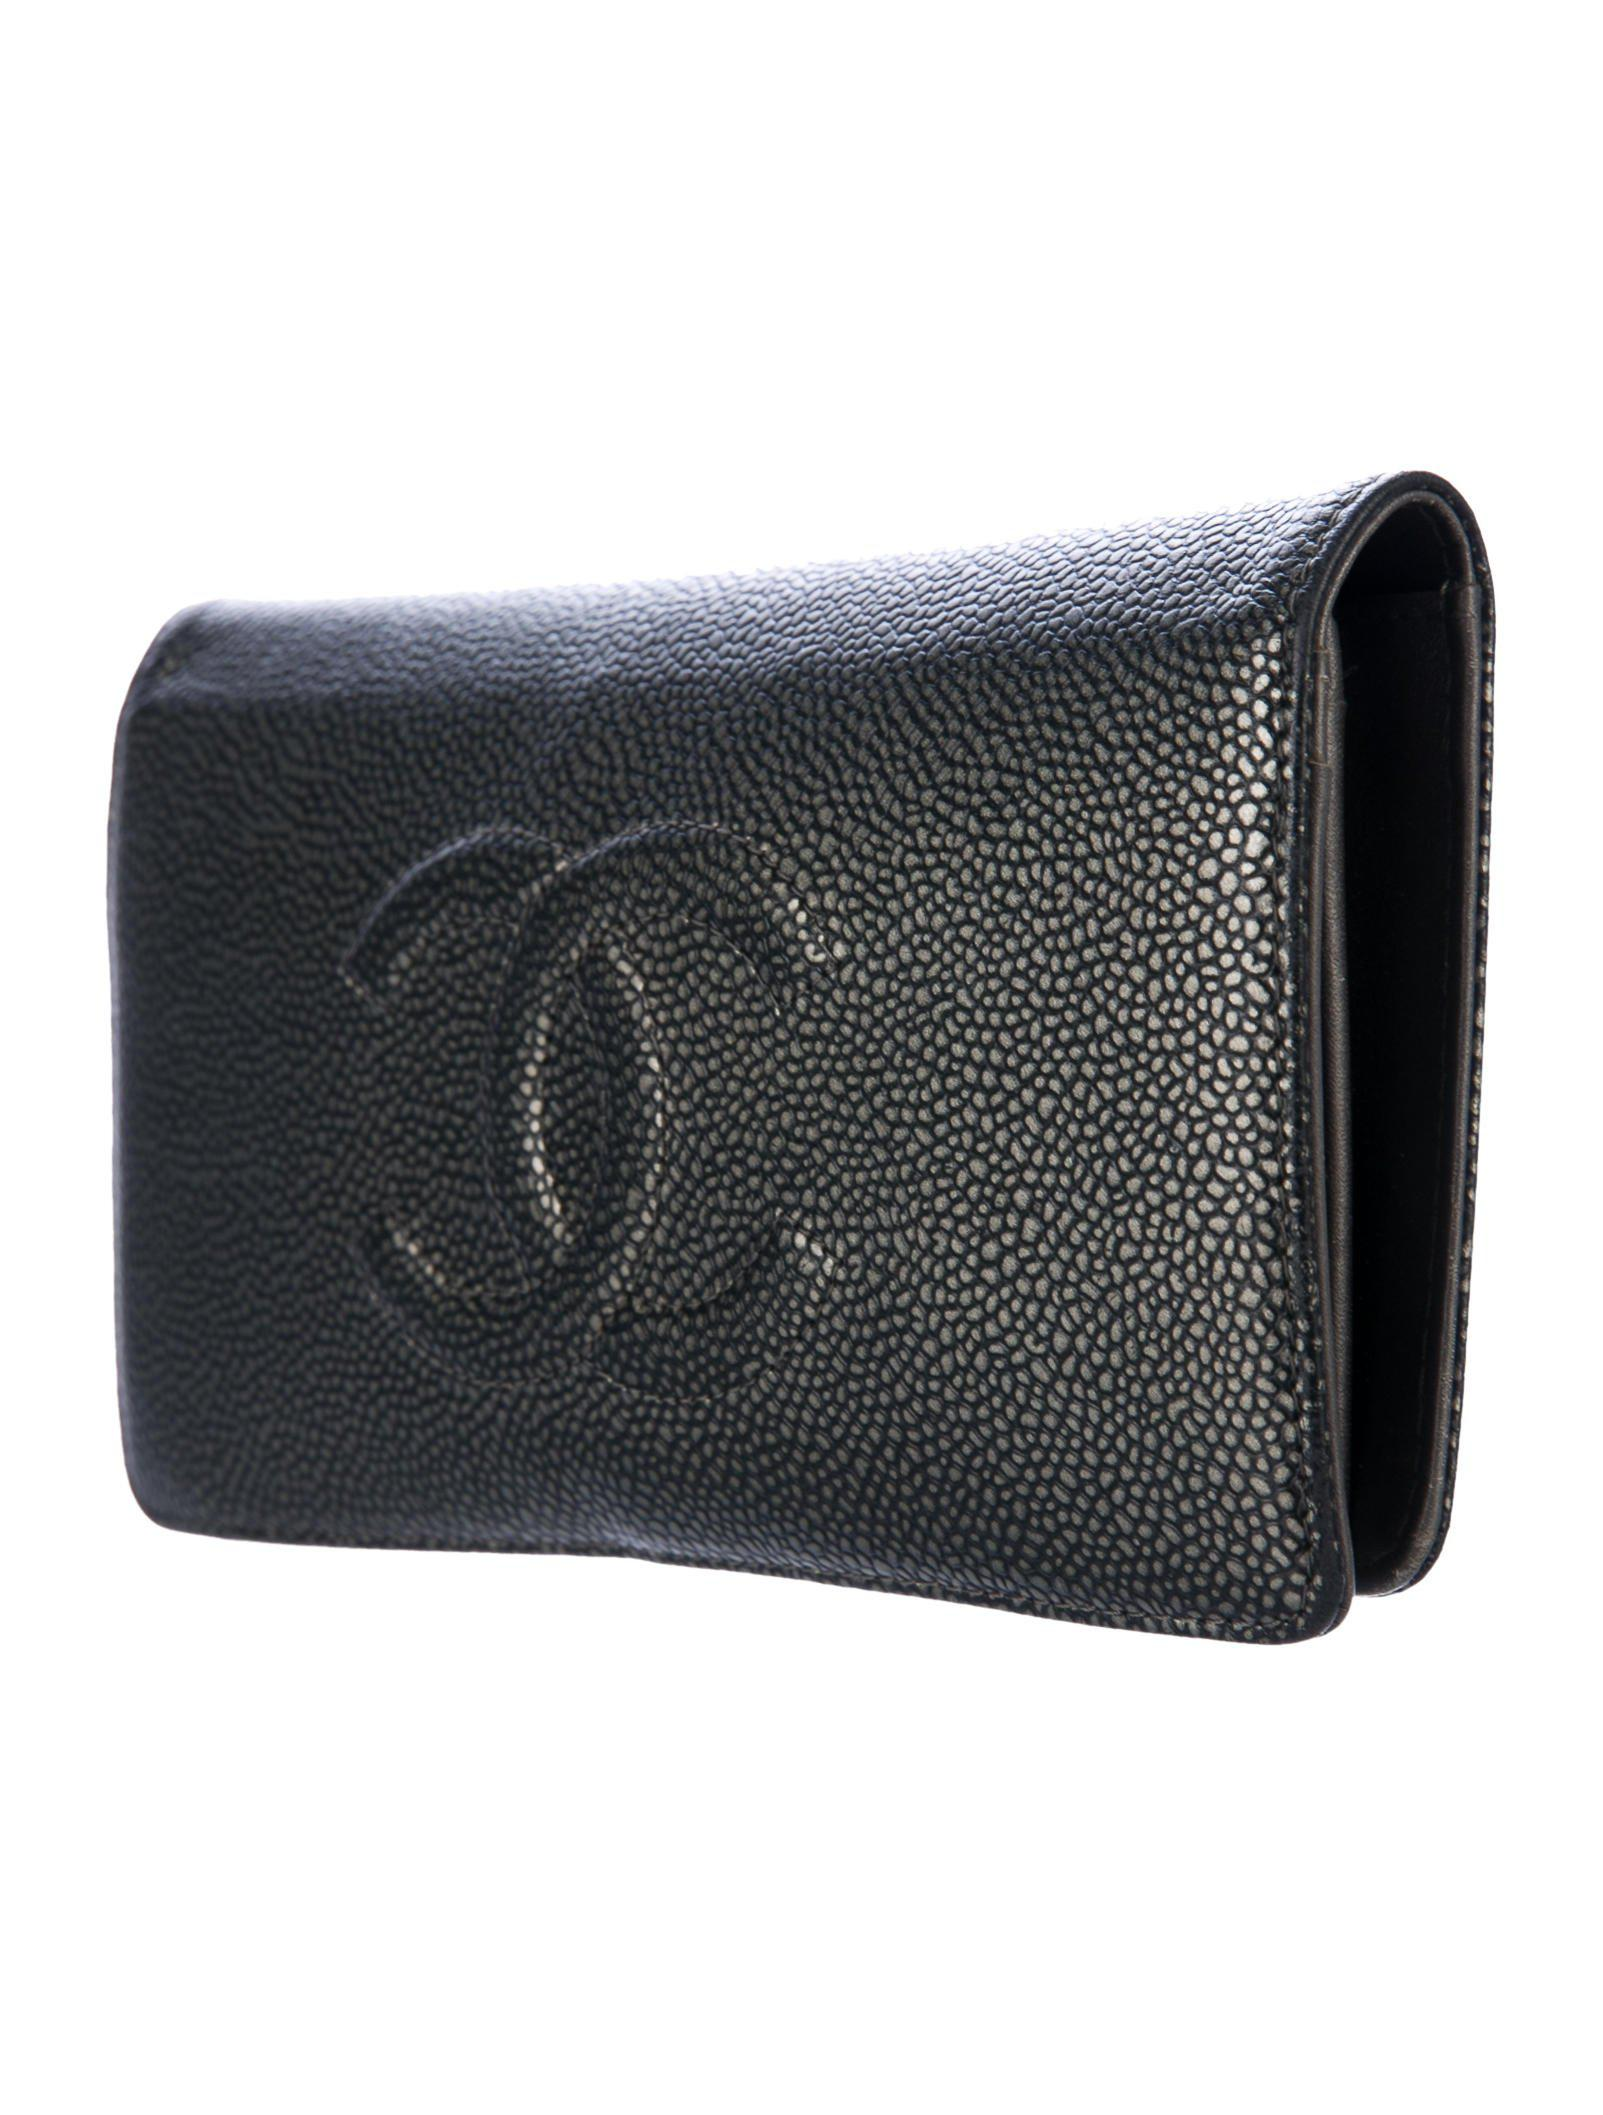 ec5145e76ad0 Lyst - Chanel Caviar Timeless Yen Wallet in Metallic